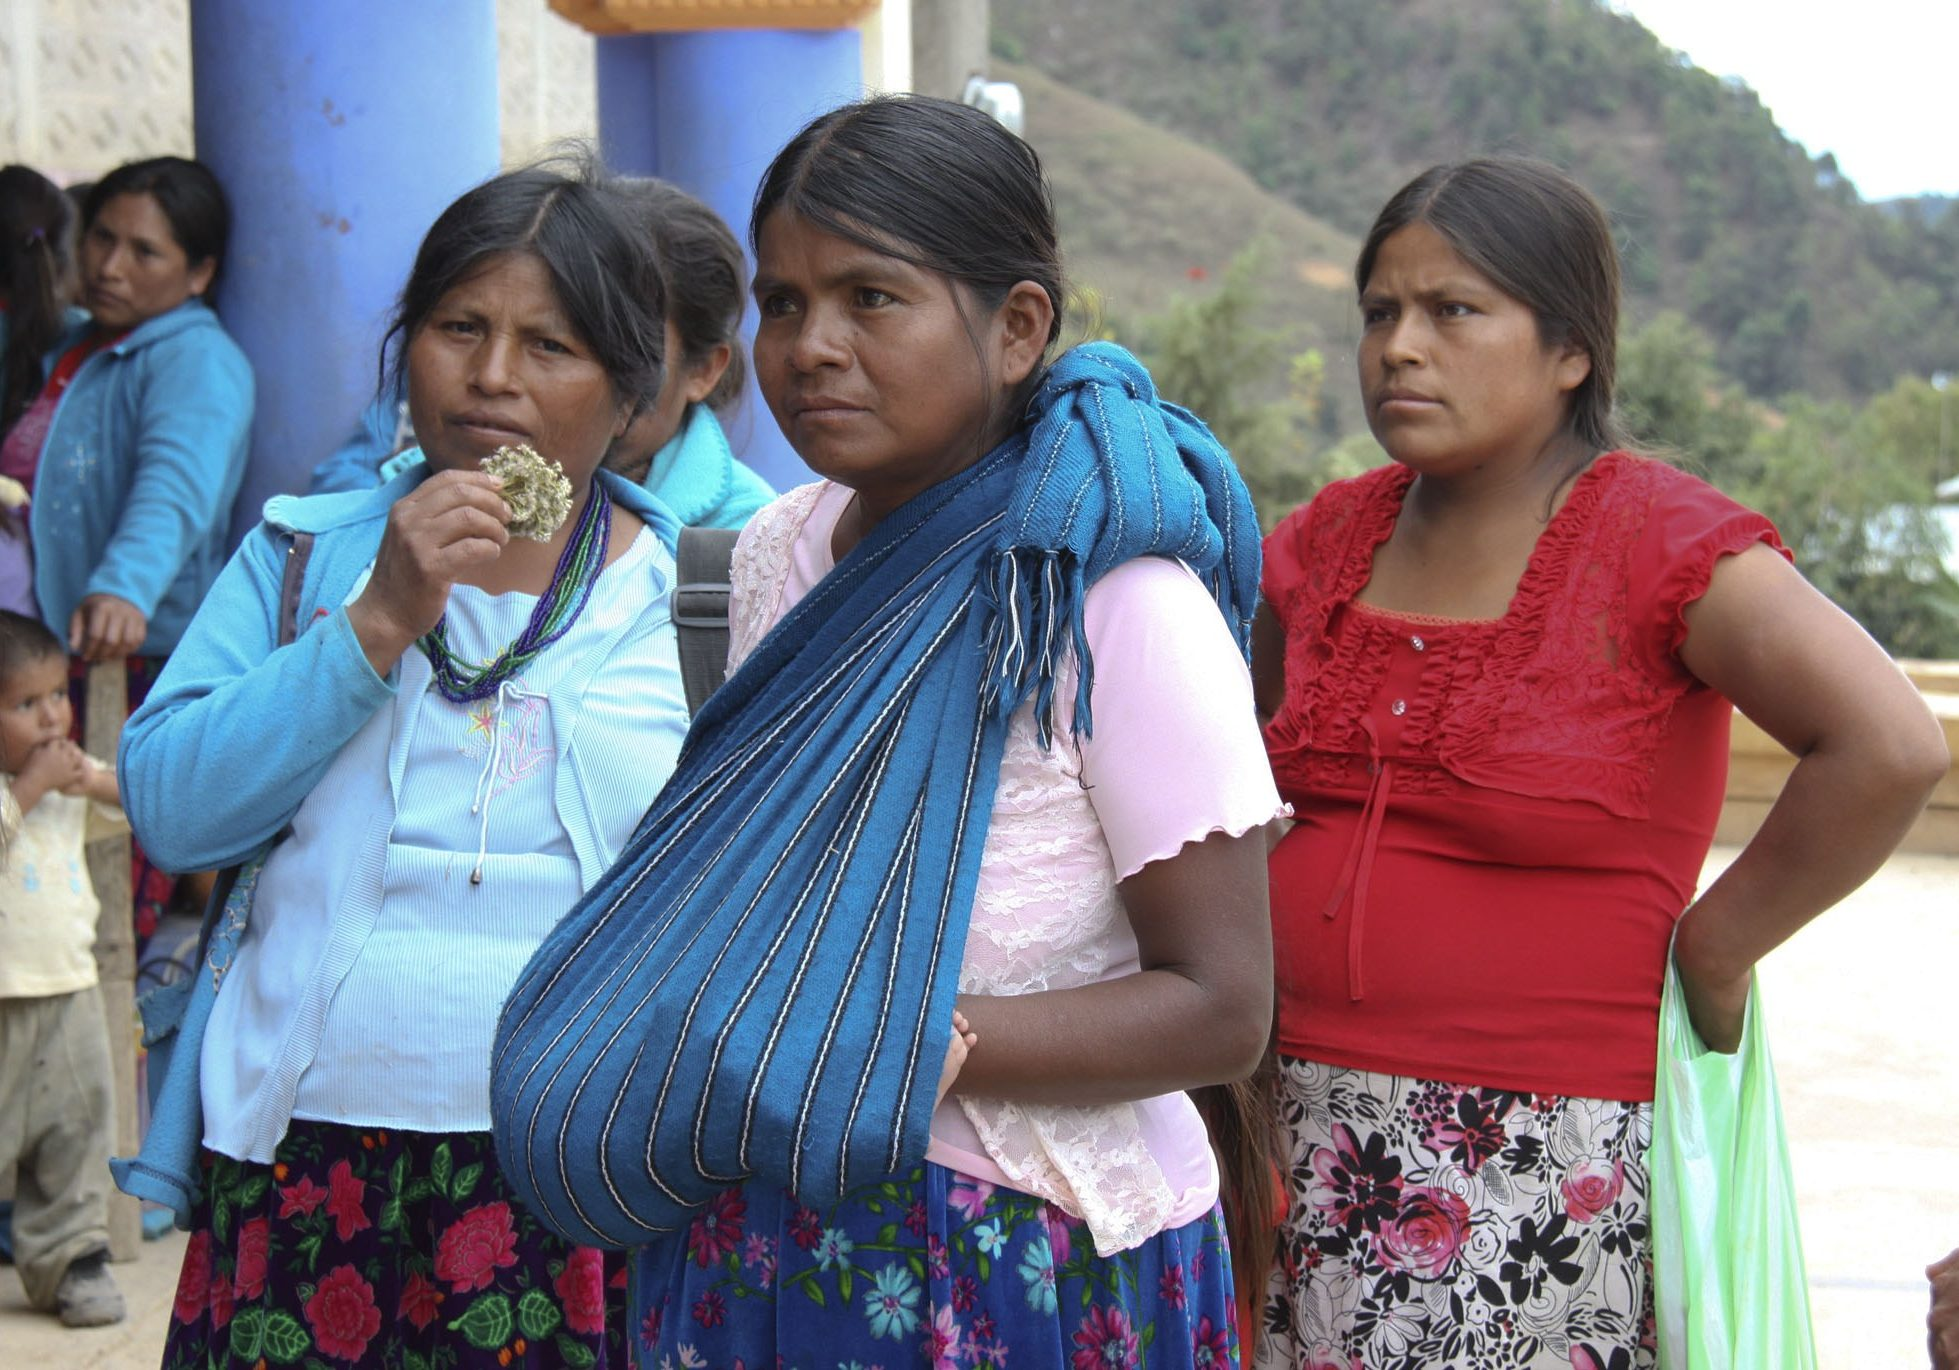 Women in Oaxaca, Mexico. Image source: ororadio.com.mx